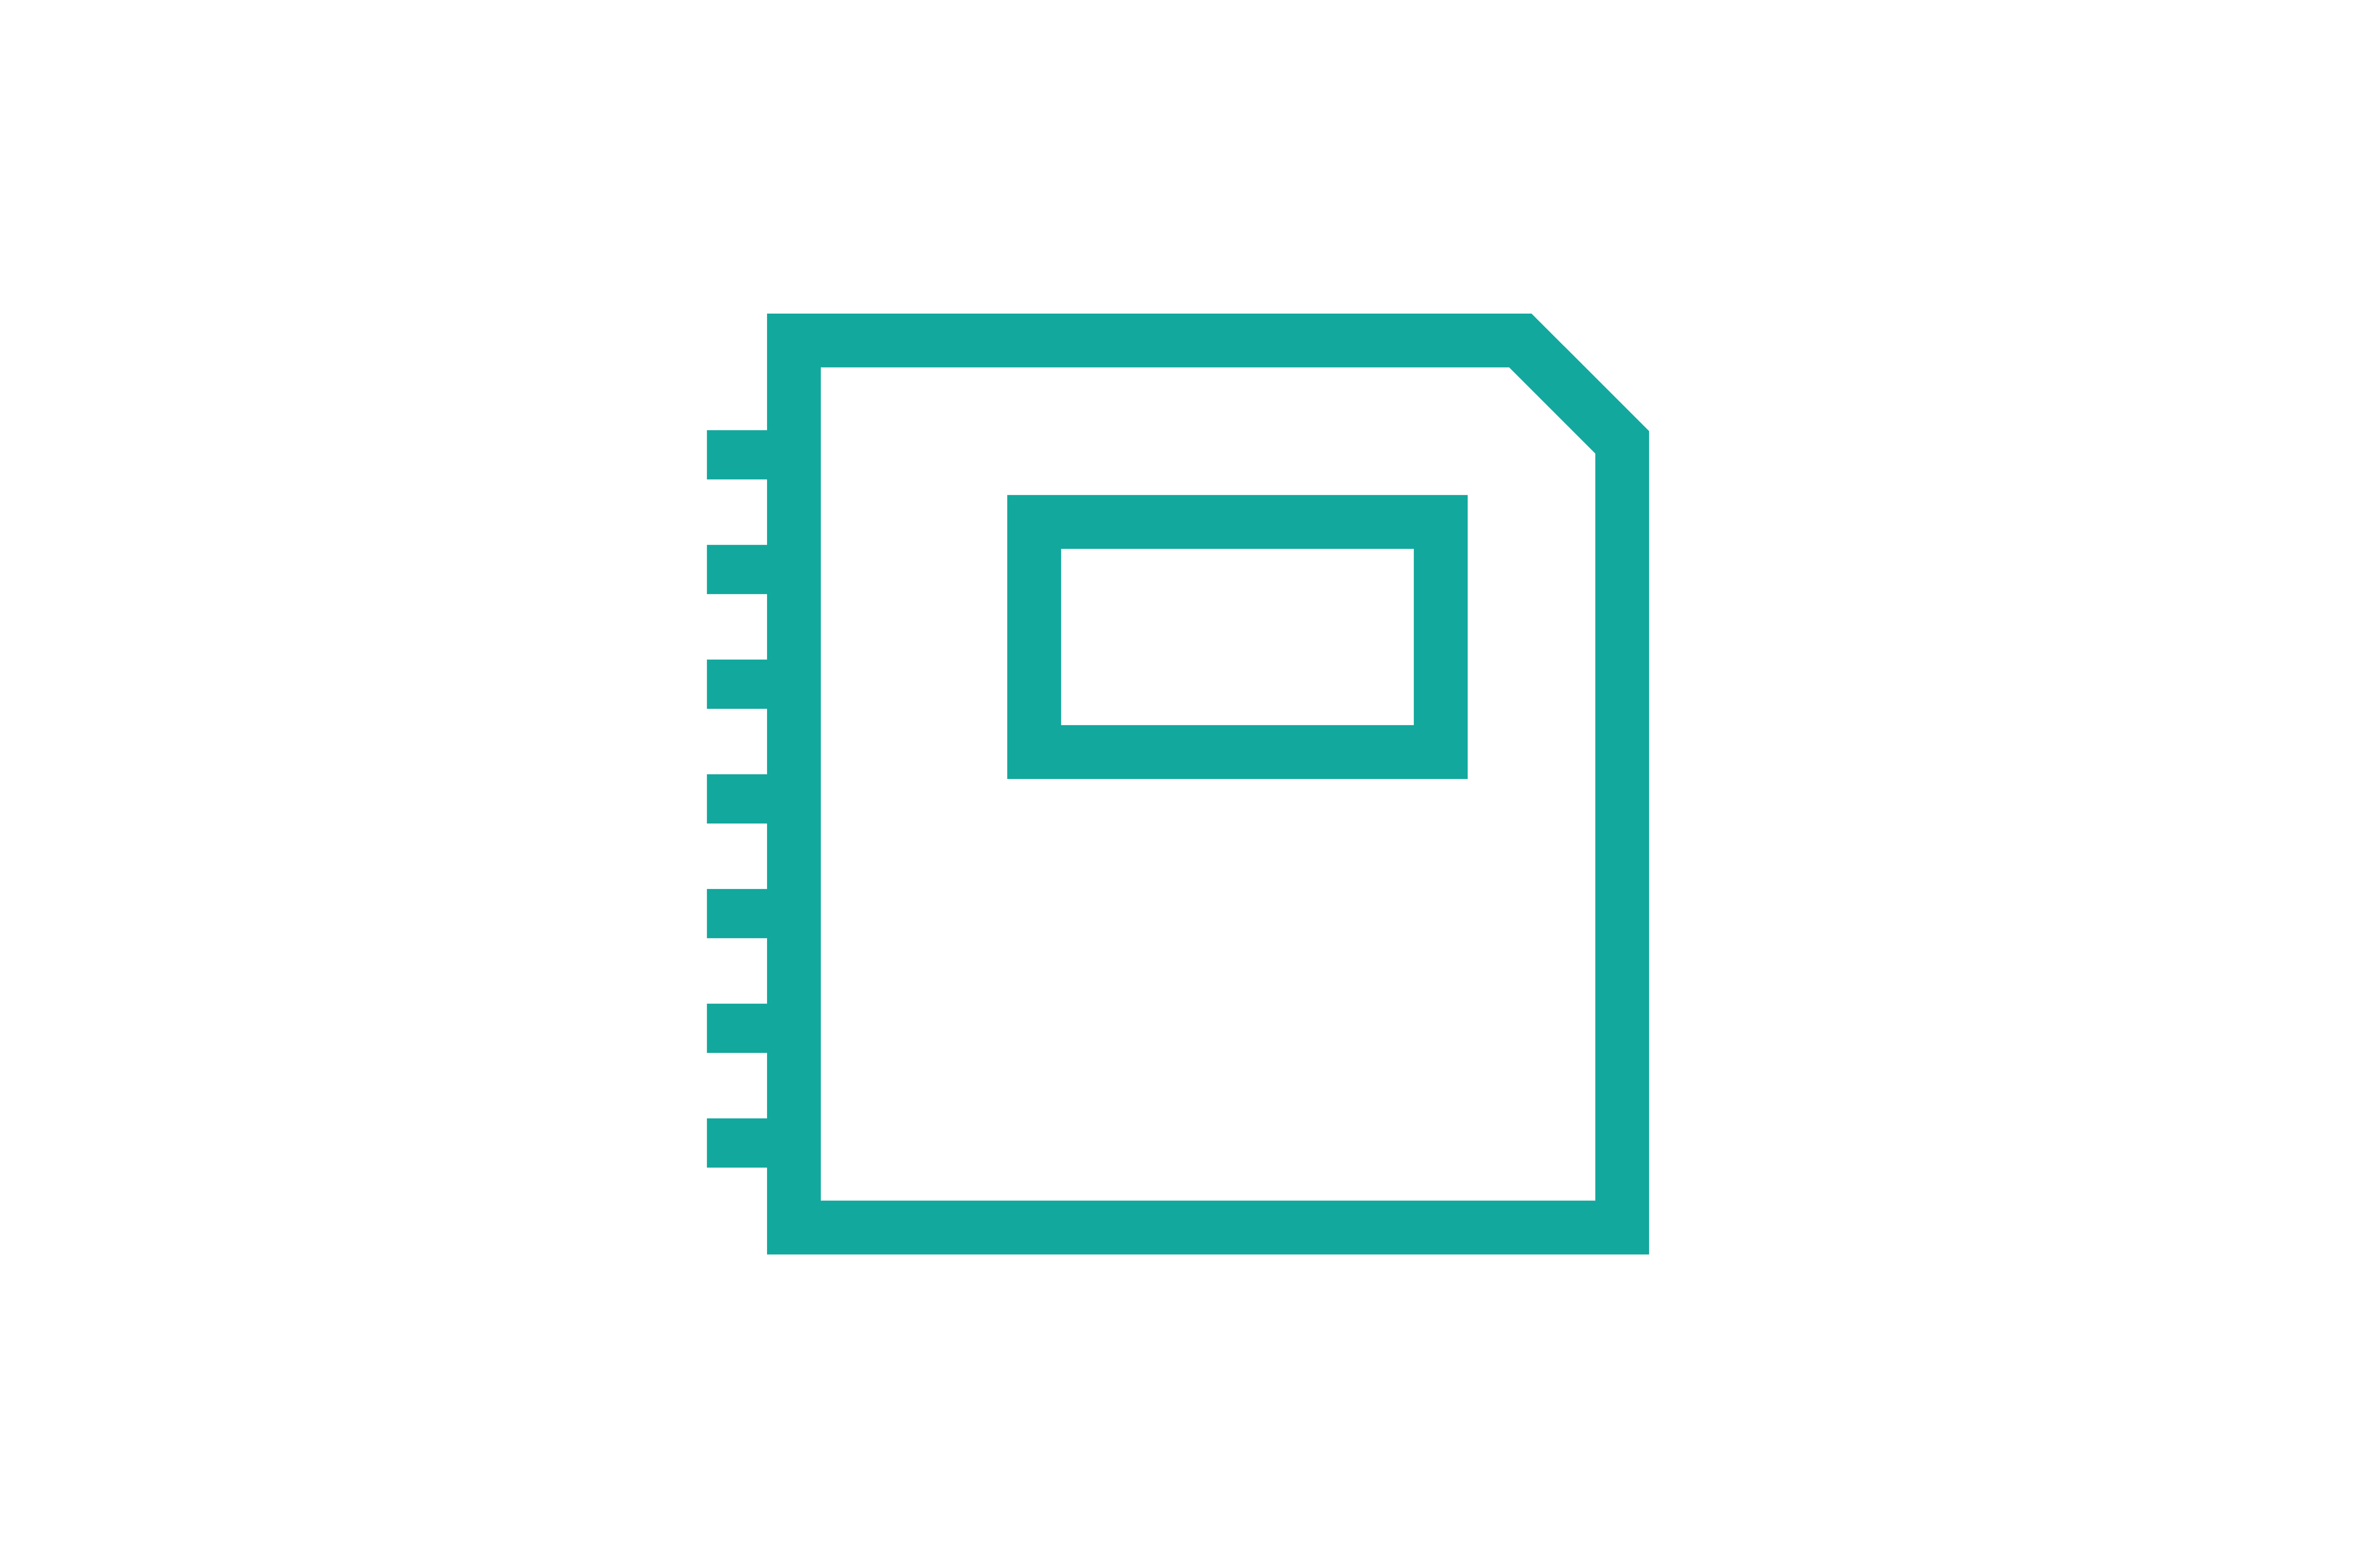 Download Free Books Icon Graphic By Zafreeloicon Creative Fabrica for Cricut Explore, Silhouette and other cutting machines.